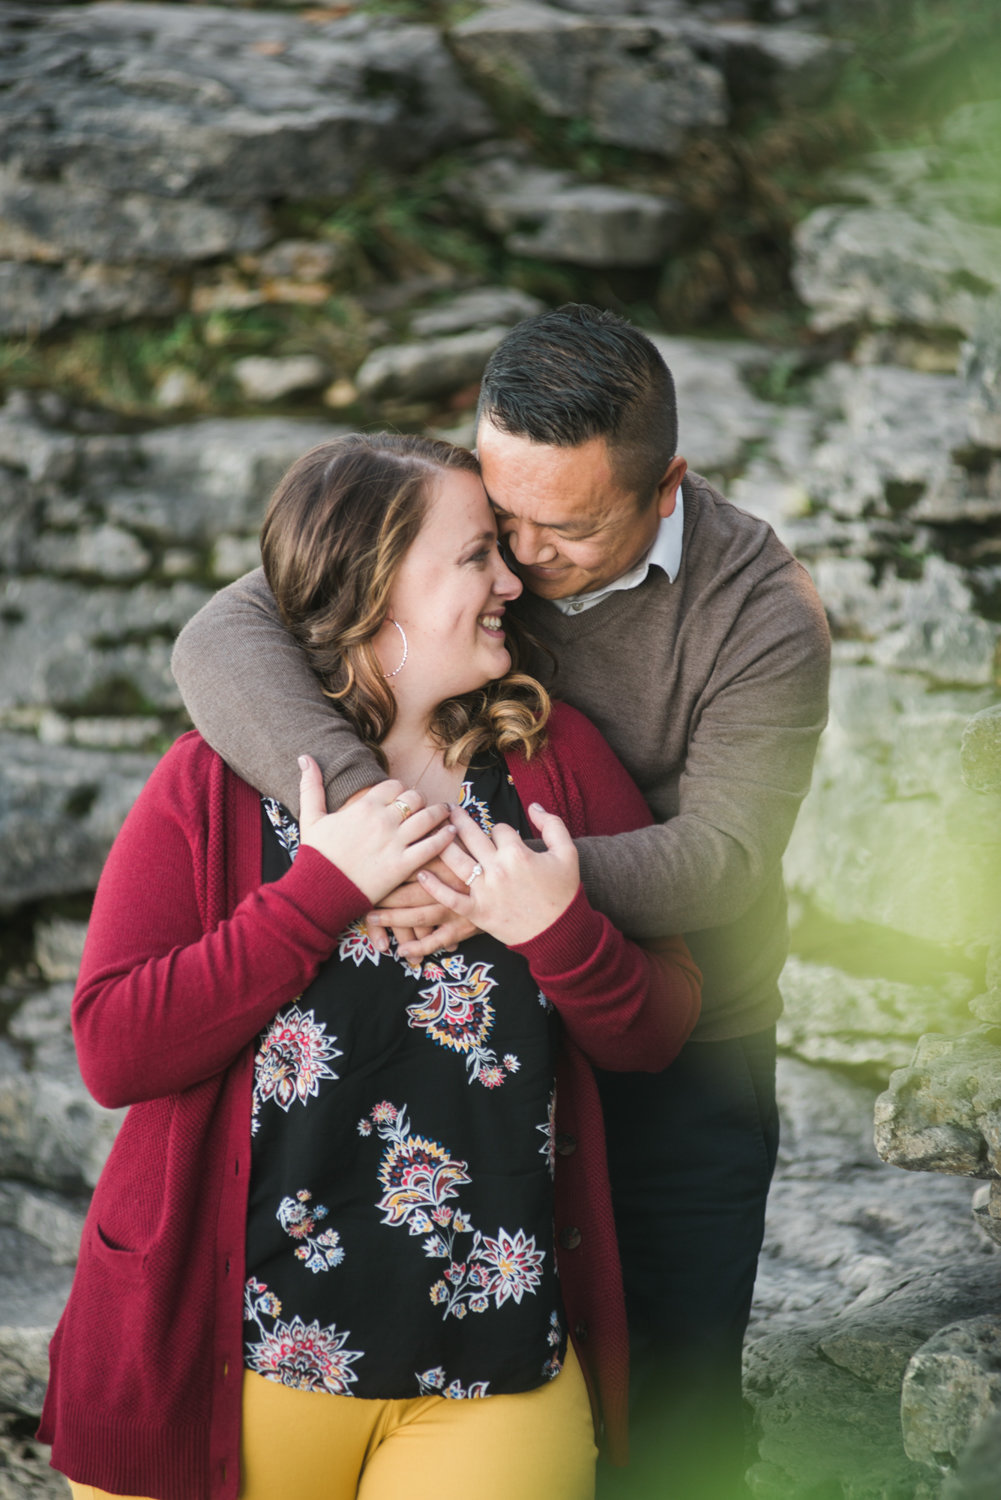 Photographer Wausau WI, Wausau Photographer, Photography Wausau WI, Wausau Photography, Engagement Photographer Wausau, Engagement Photography Wausau